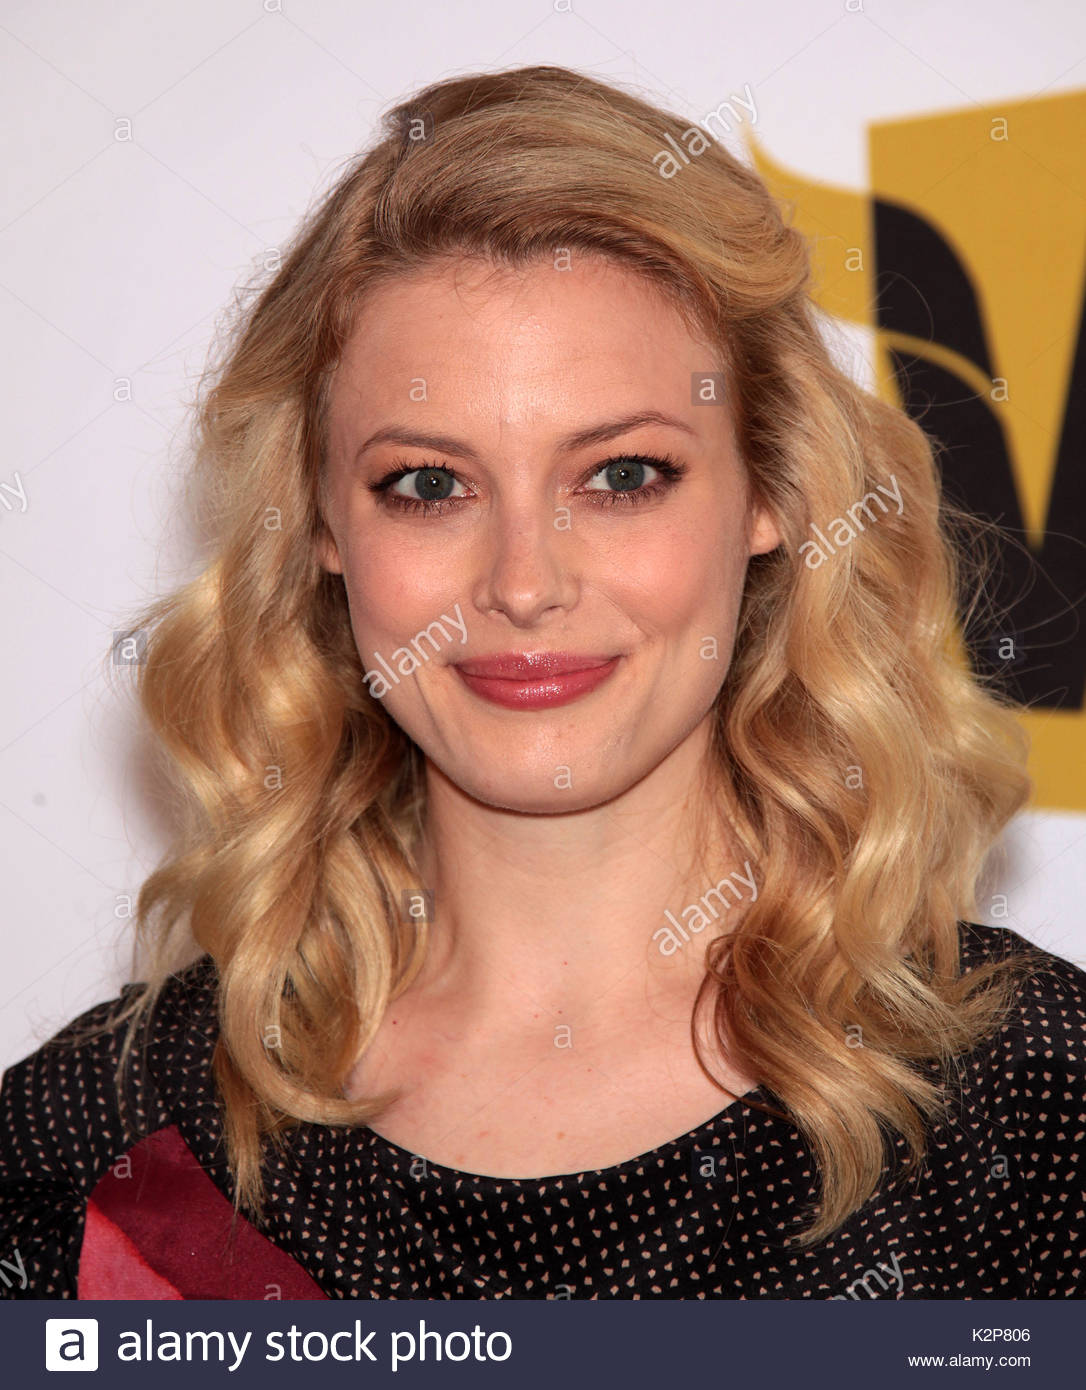 Celebrites Gillian Jacobs naked (41 photos), Is a cute